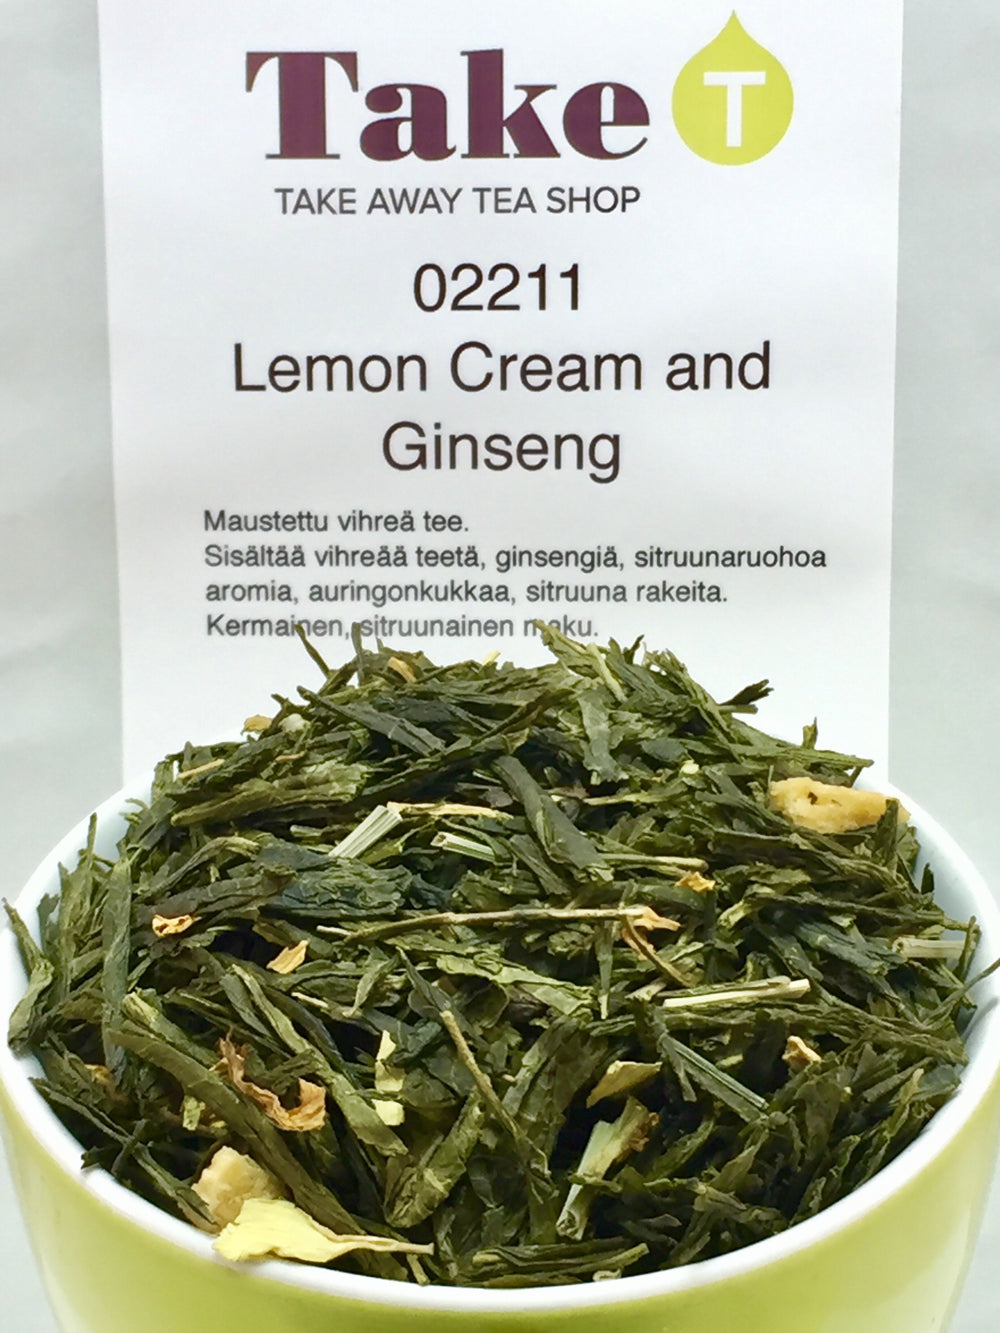 Lemon Cream with Ginseng